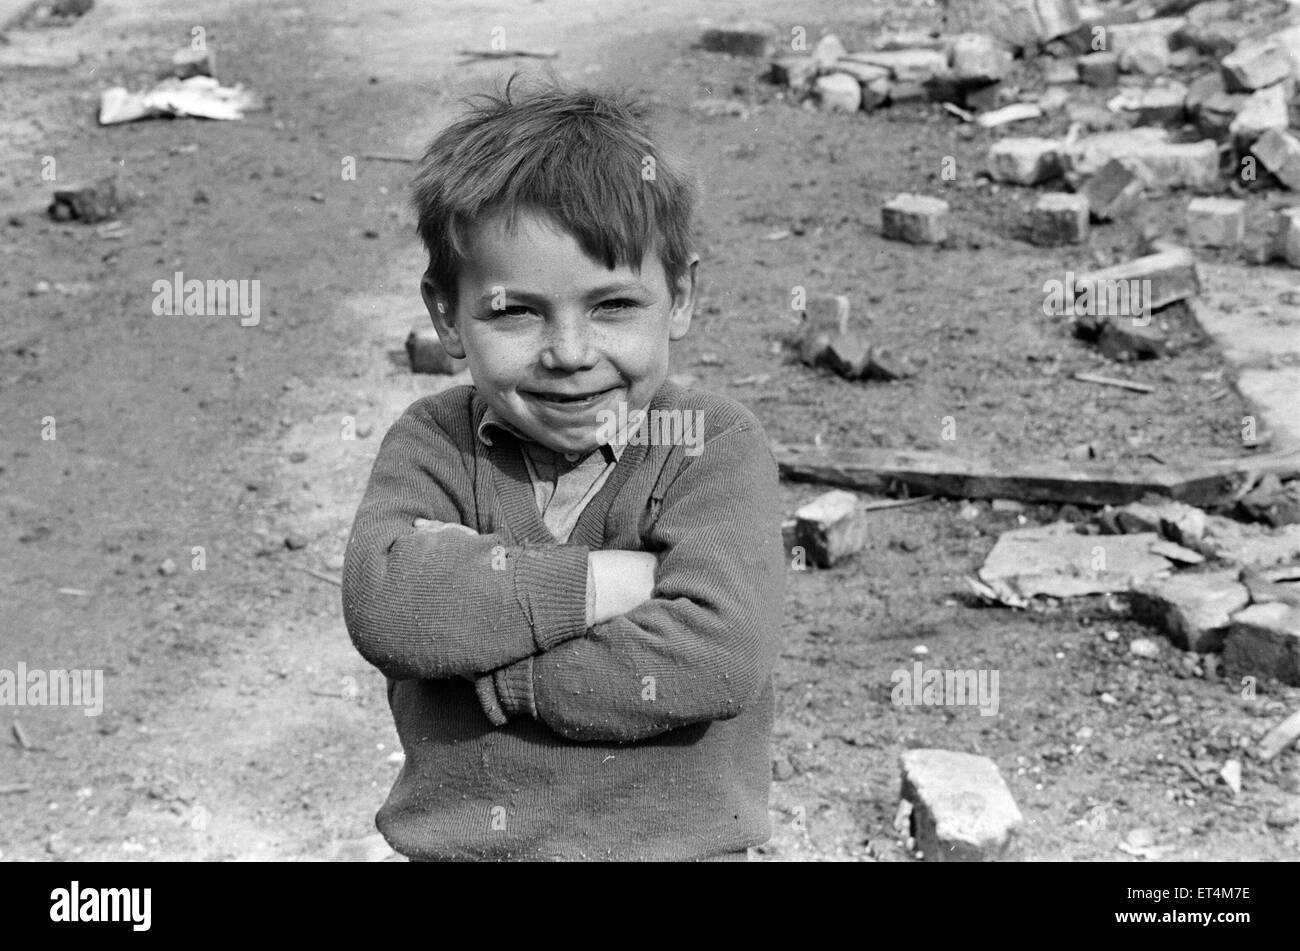 Children who live in no mans land, Belfast, Northern Ireland, 30th March 1971. - Stock Image